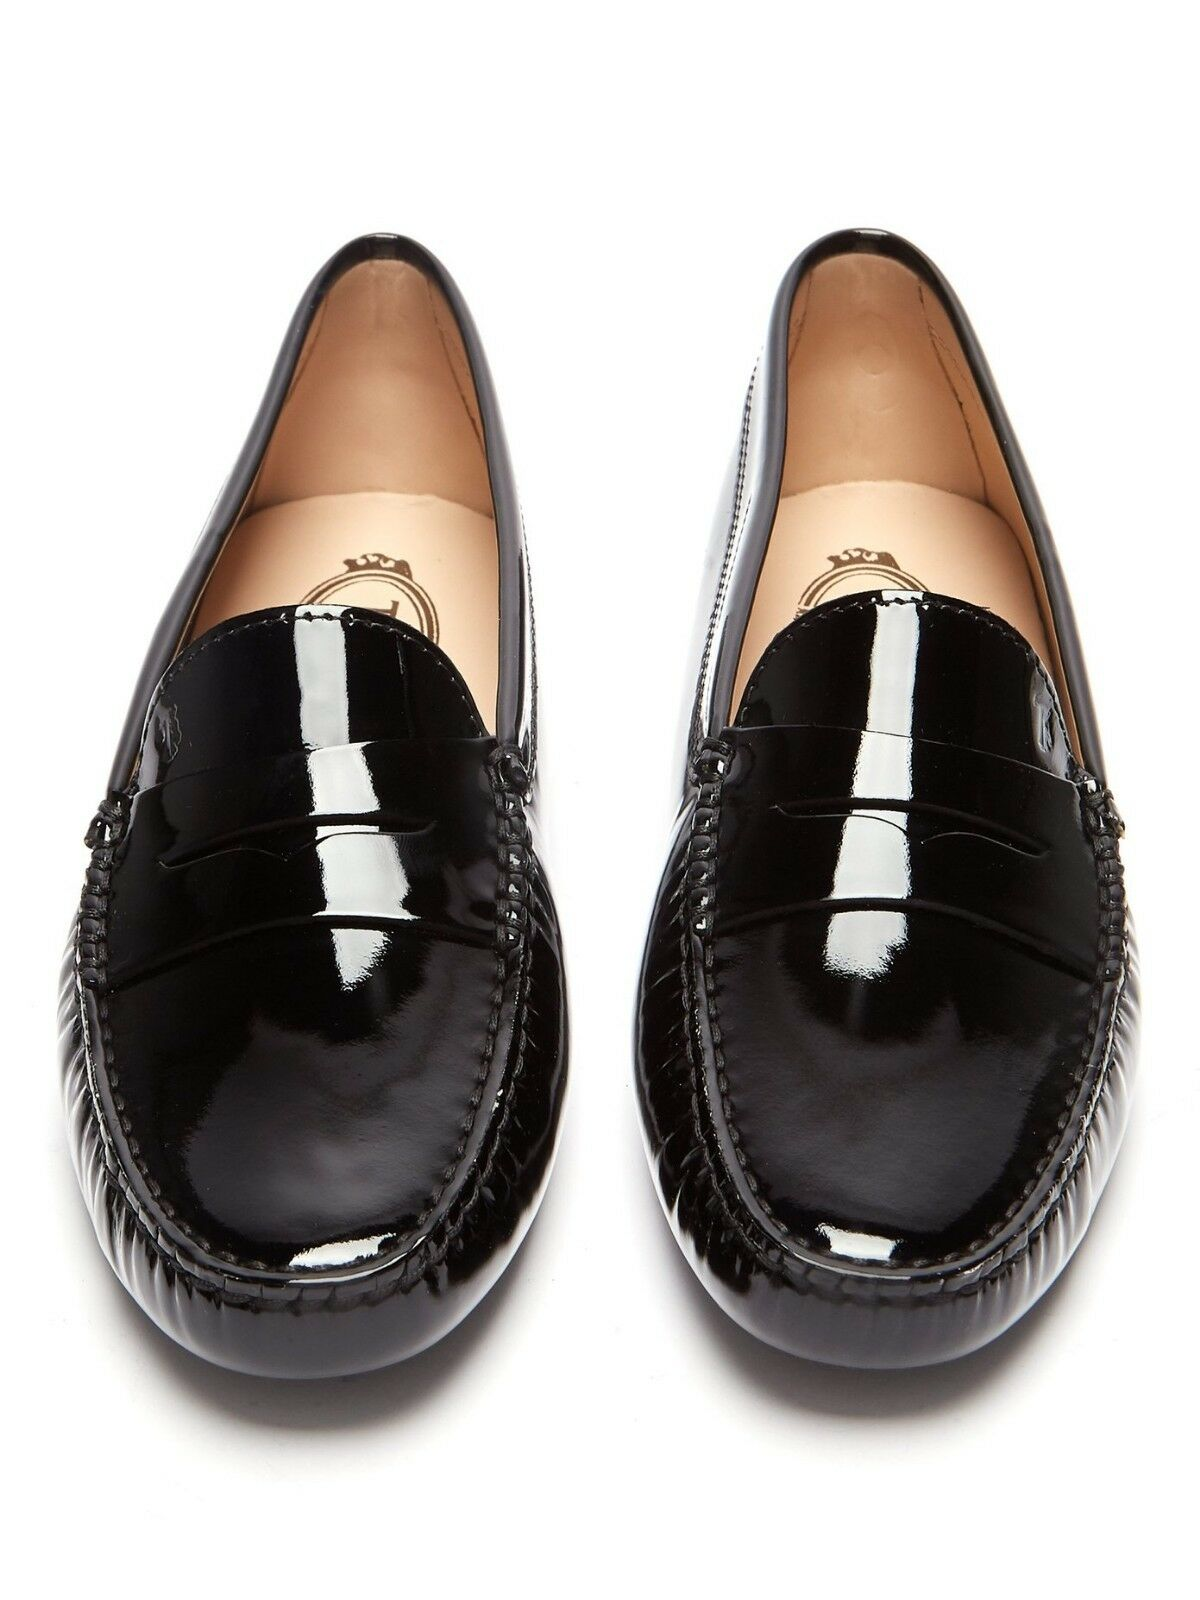 Tod's    Gommino Patent Leather Penny Loafers Driving shoes Black 9.5 40  425 c87c49